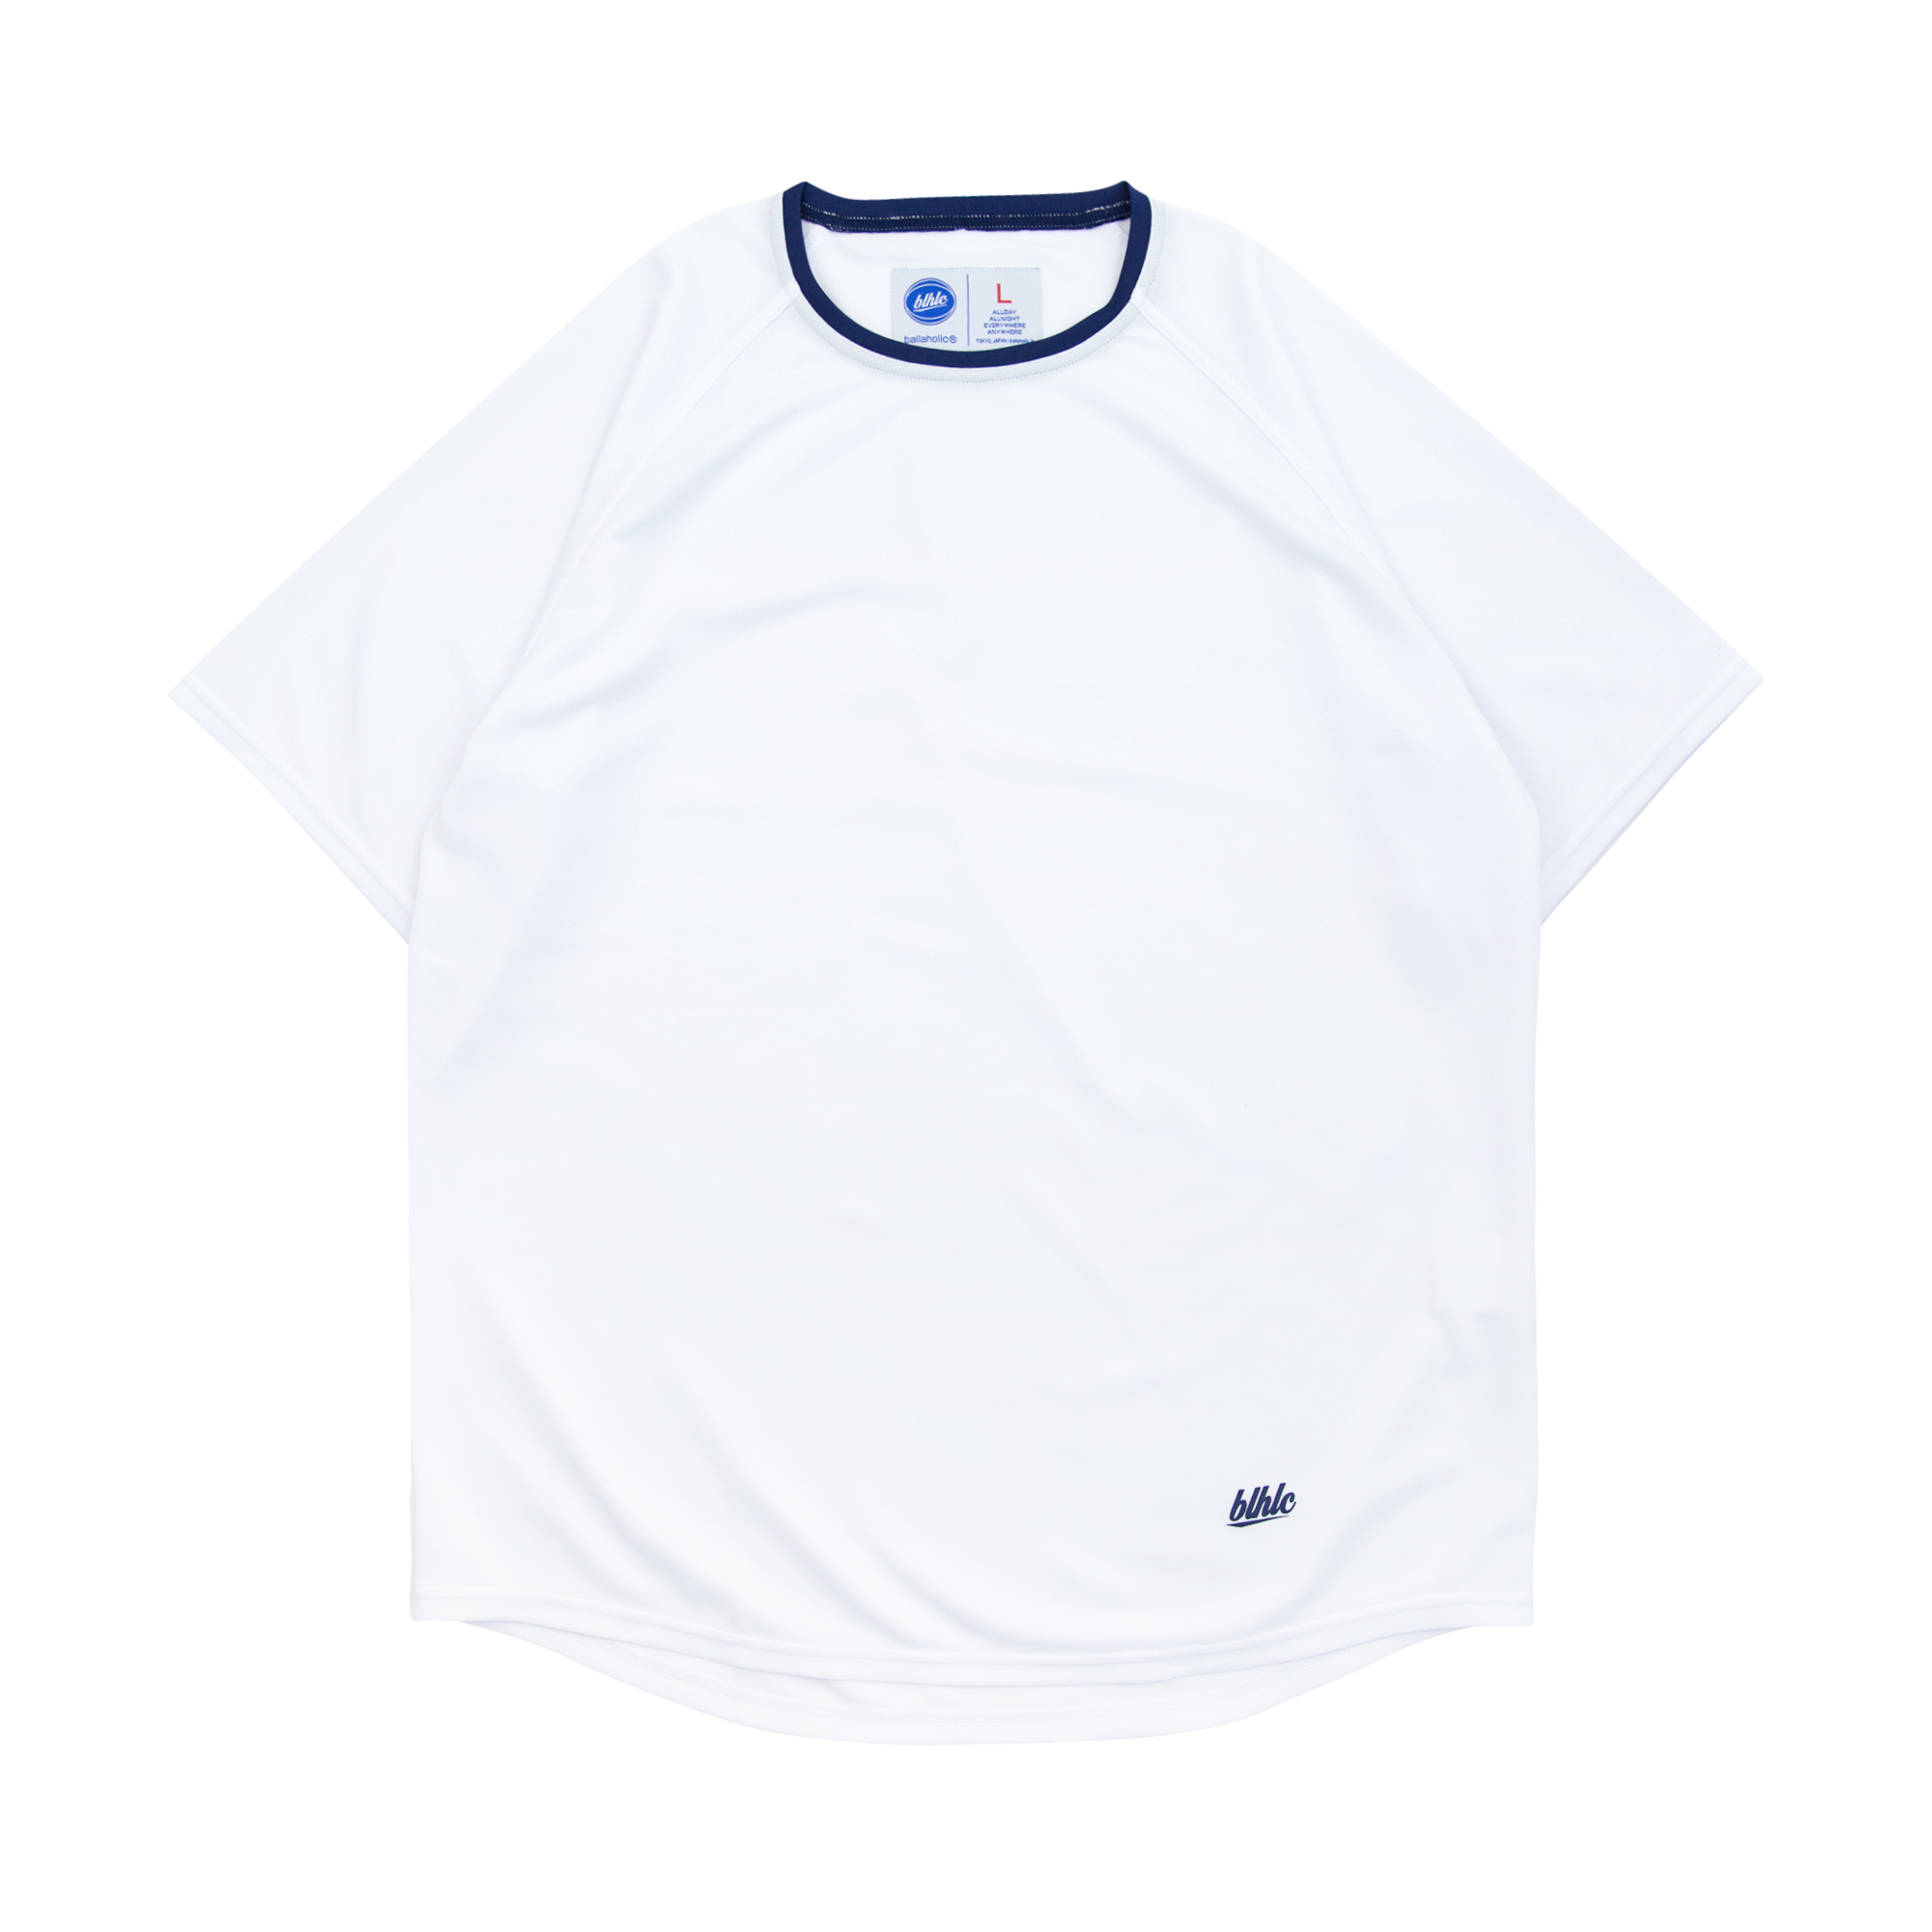 blhlc COOL Tee (white/navy)